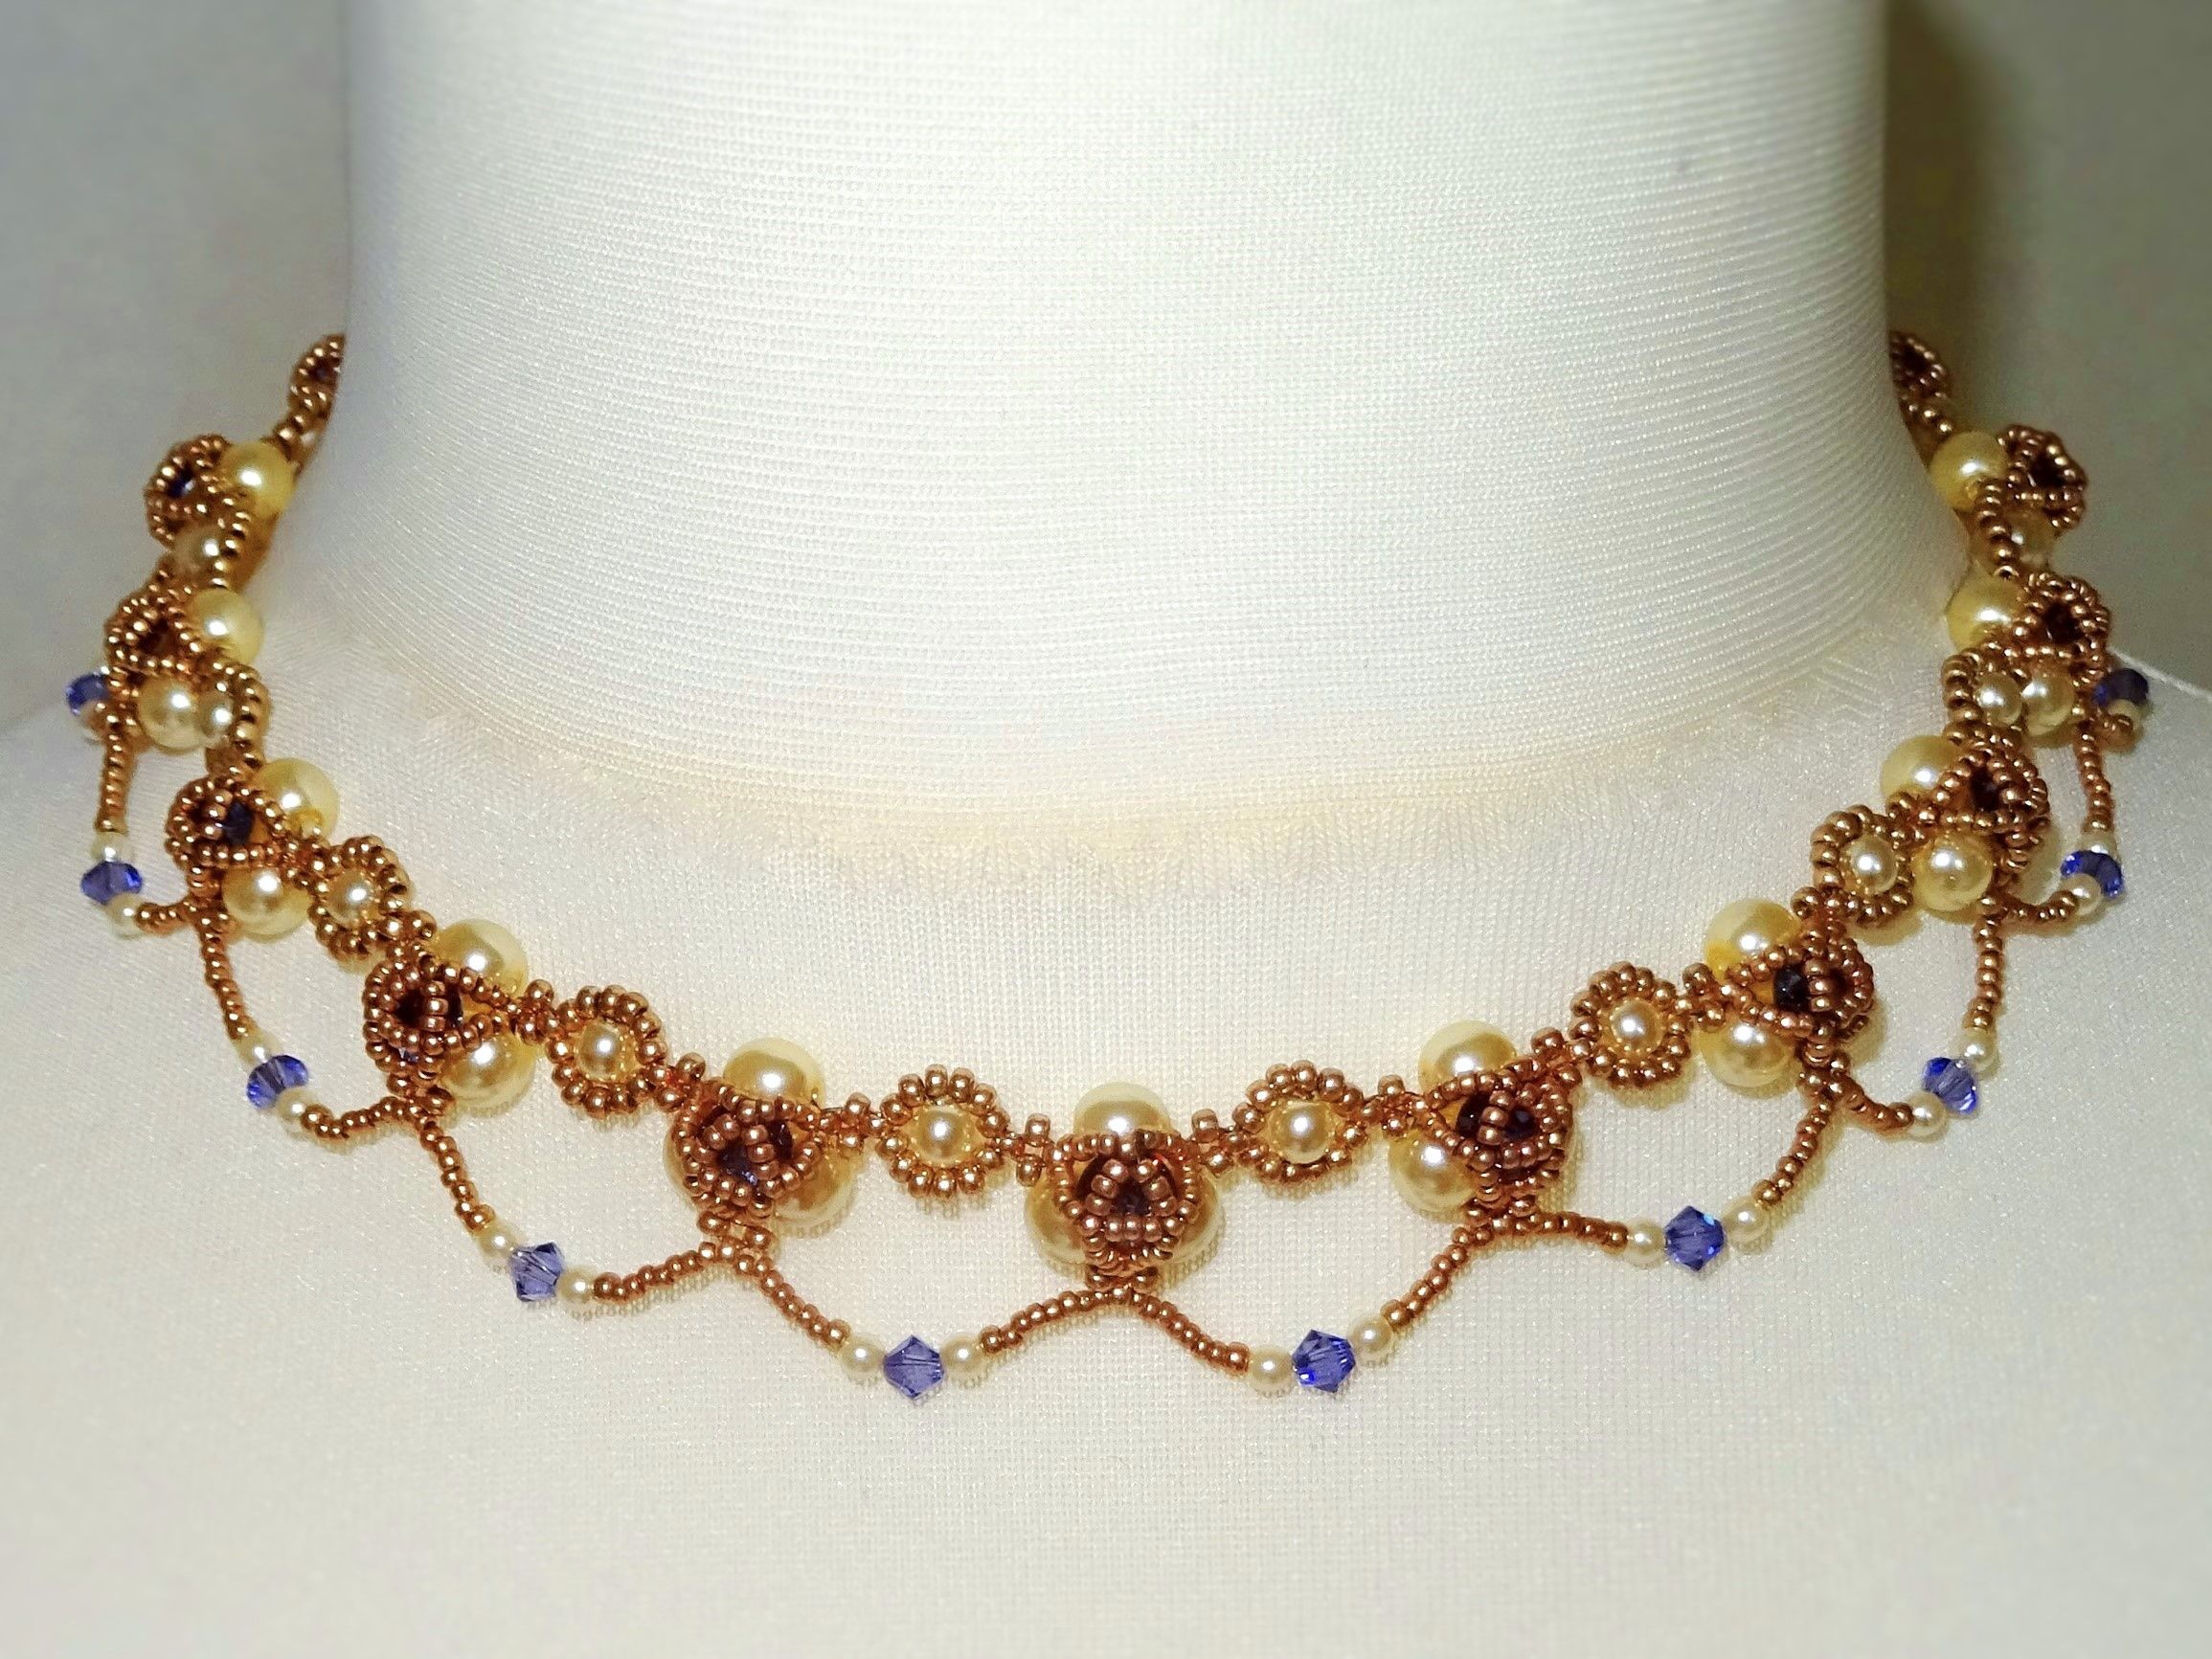 Learn how to make this pretty necklace with glass pearls, crystal chatons, bicones and seed beads. The 19 page tutorial includes:* Introduction* Tips & information* Materials list* Step-by-step photos and instructions Please note:* You are purchasing the t...